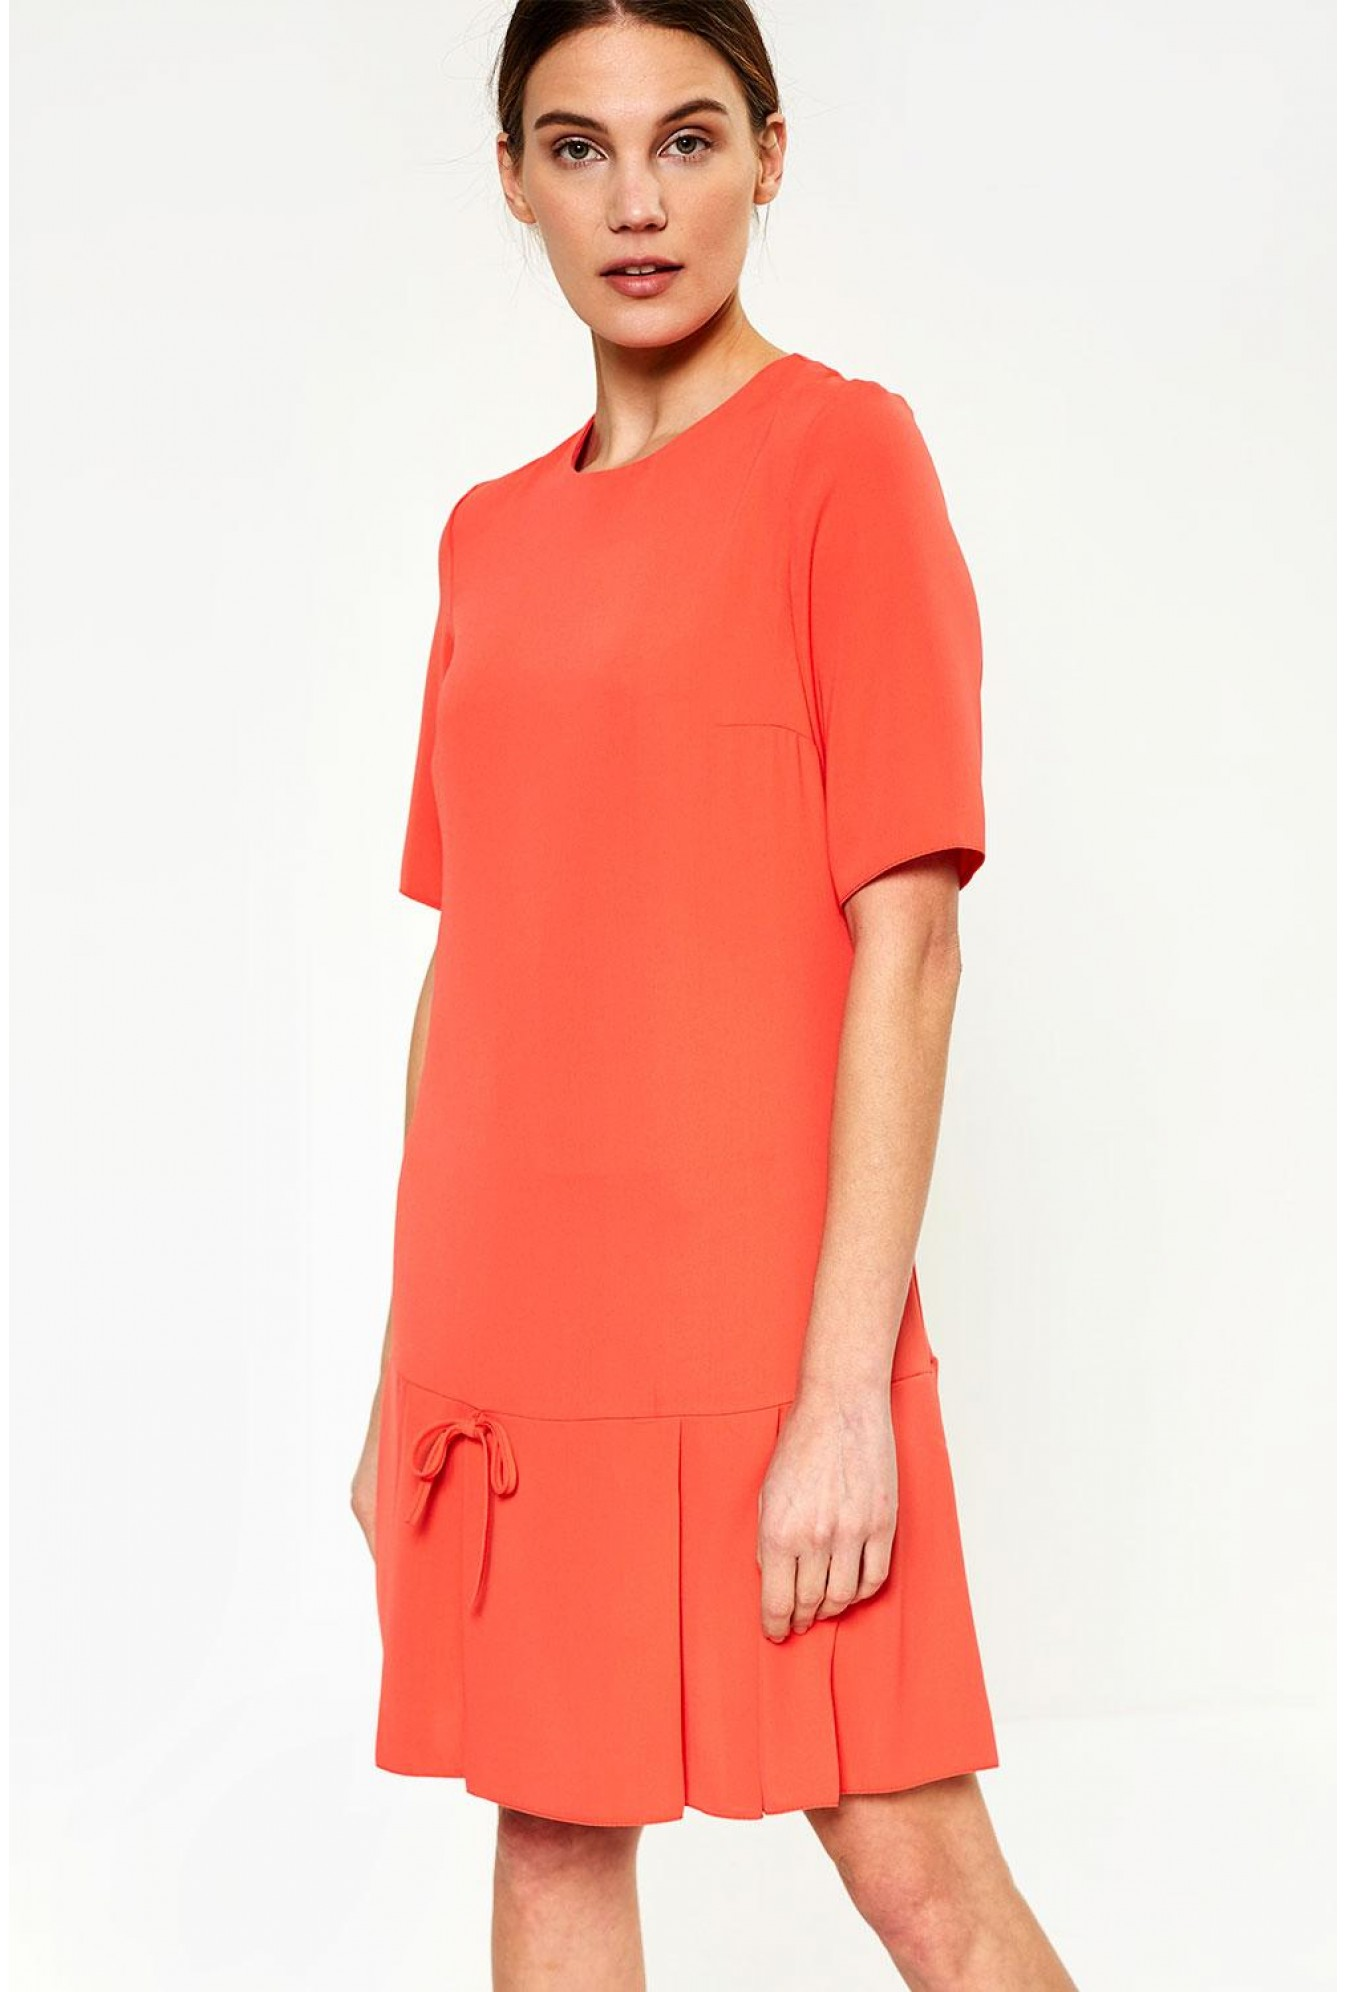 4b06d6476a739 Ad Lib Florence Frill Hem Dress in Coral | iCLOTHING